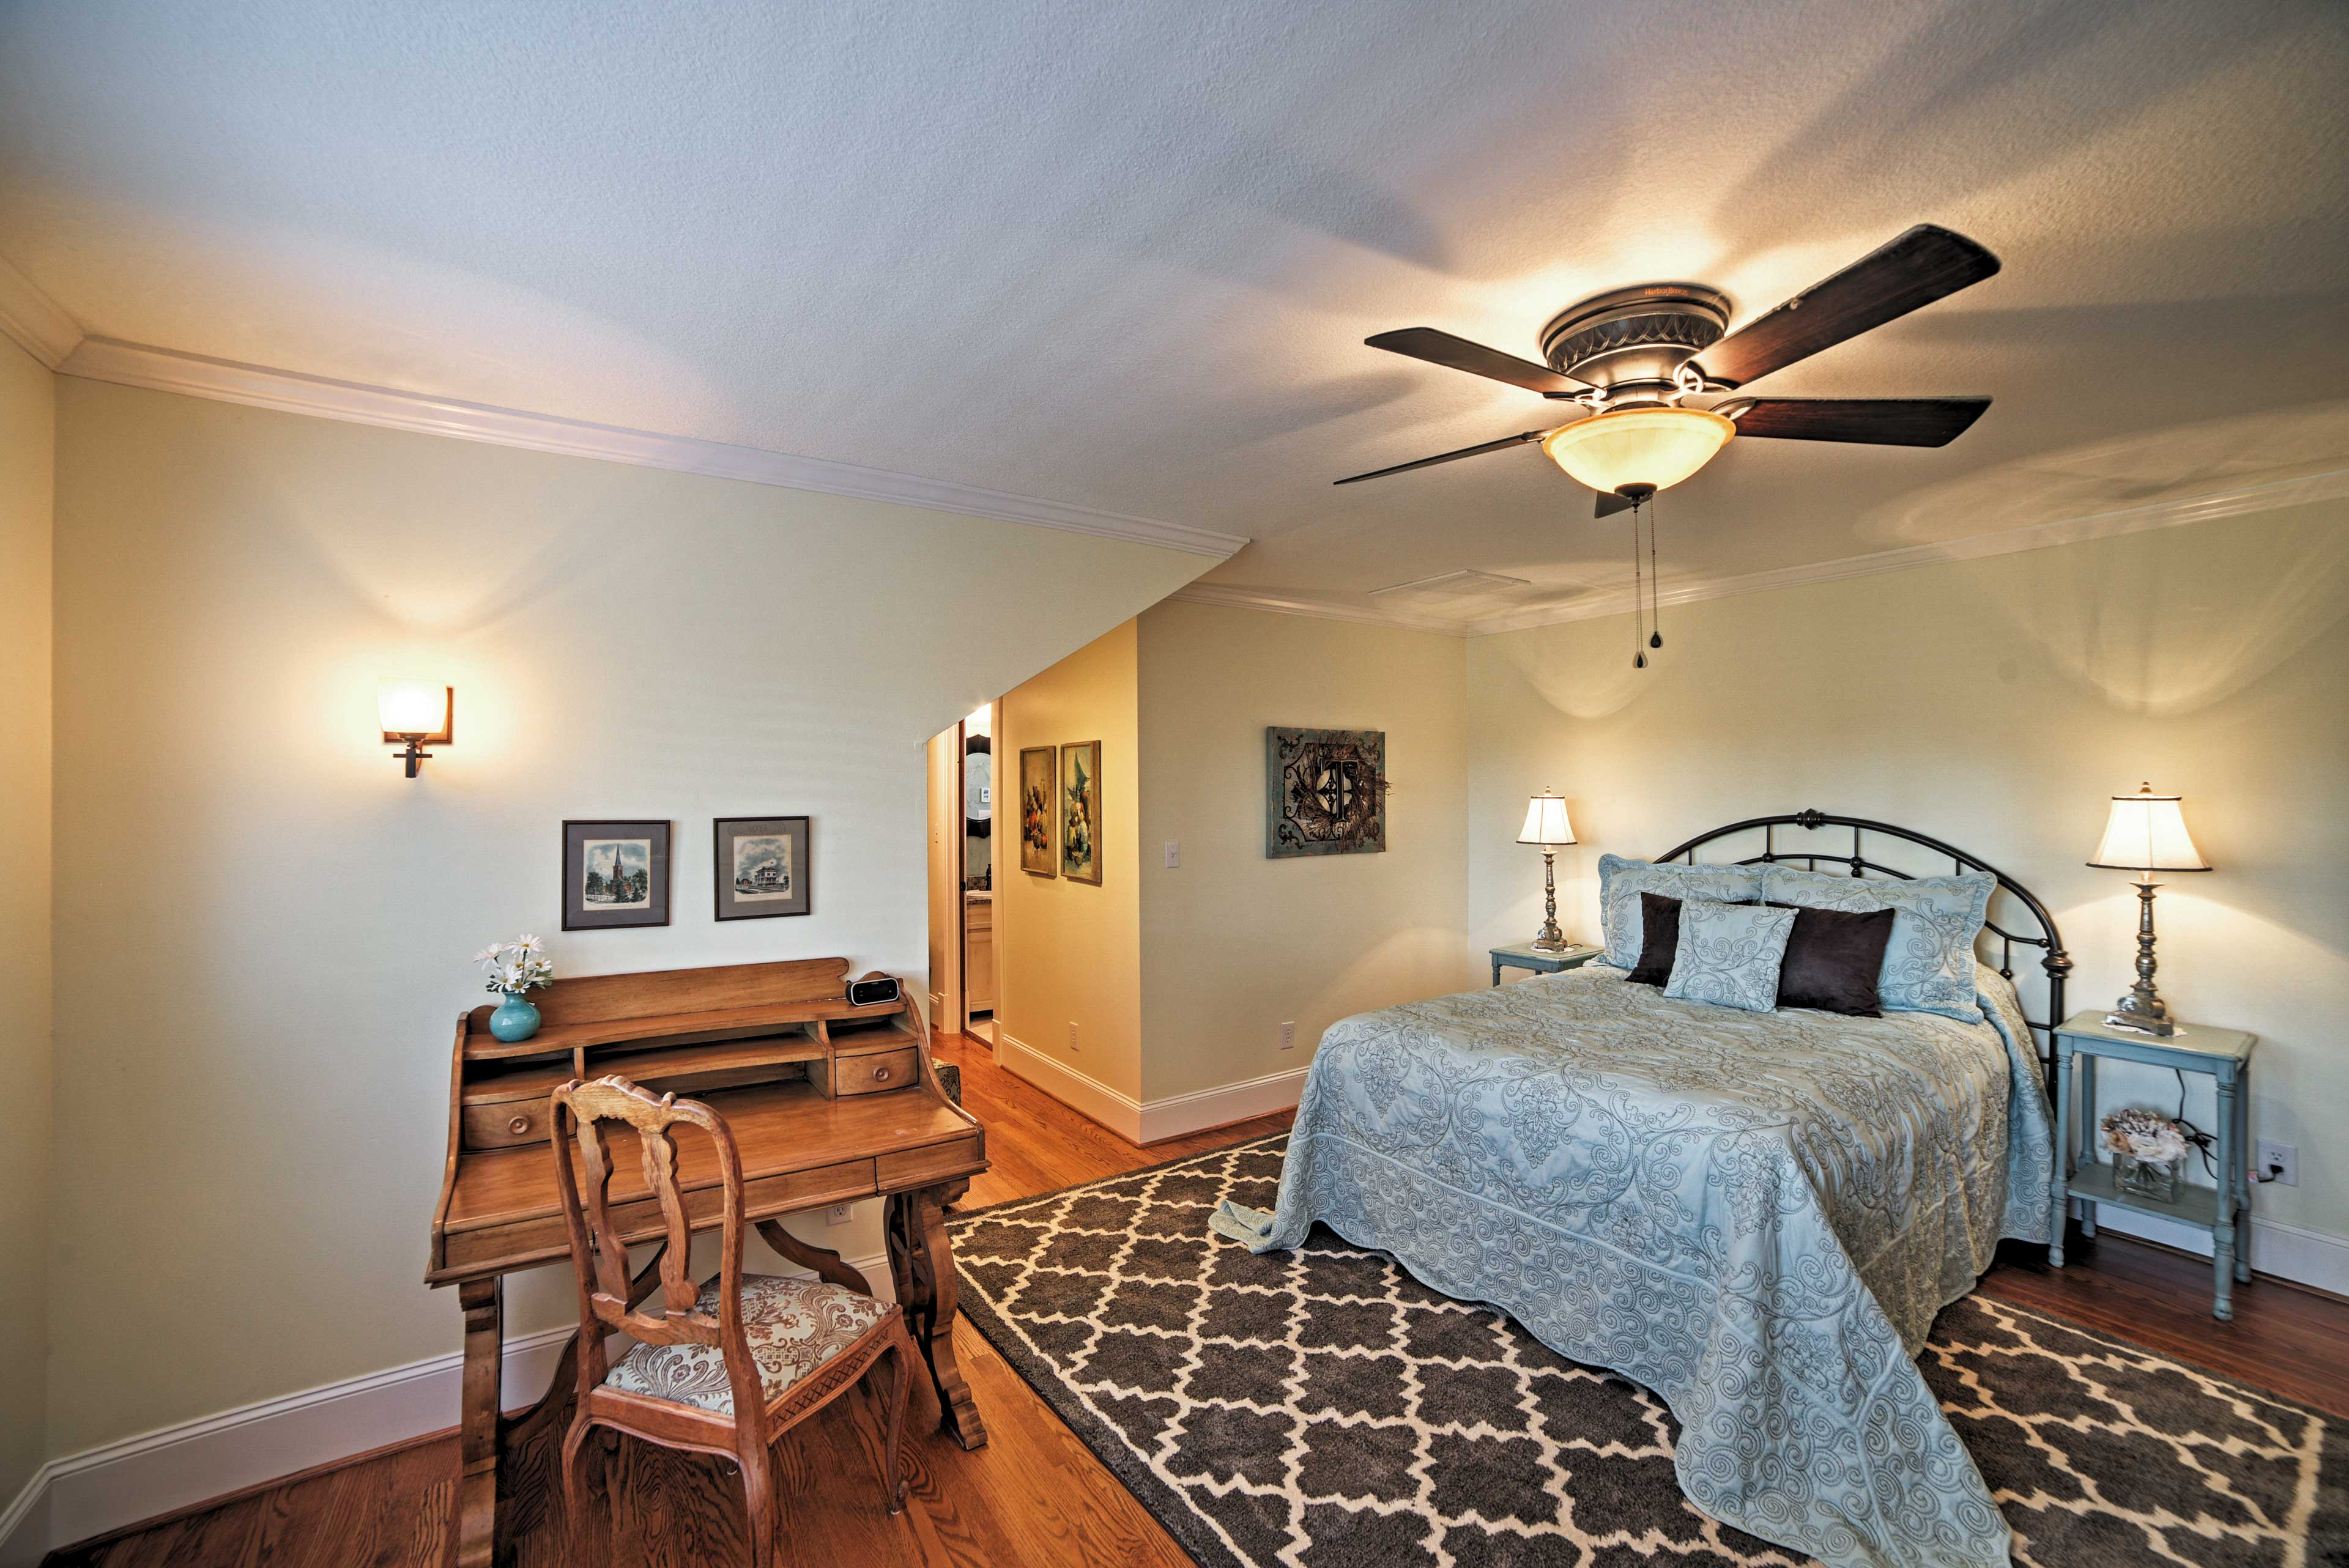 You'll find ample space to spread out and unwind in this lovely bedroom.